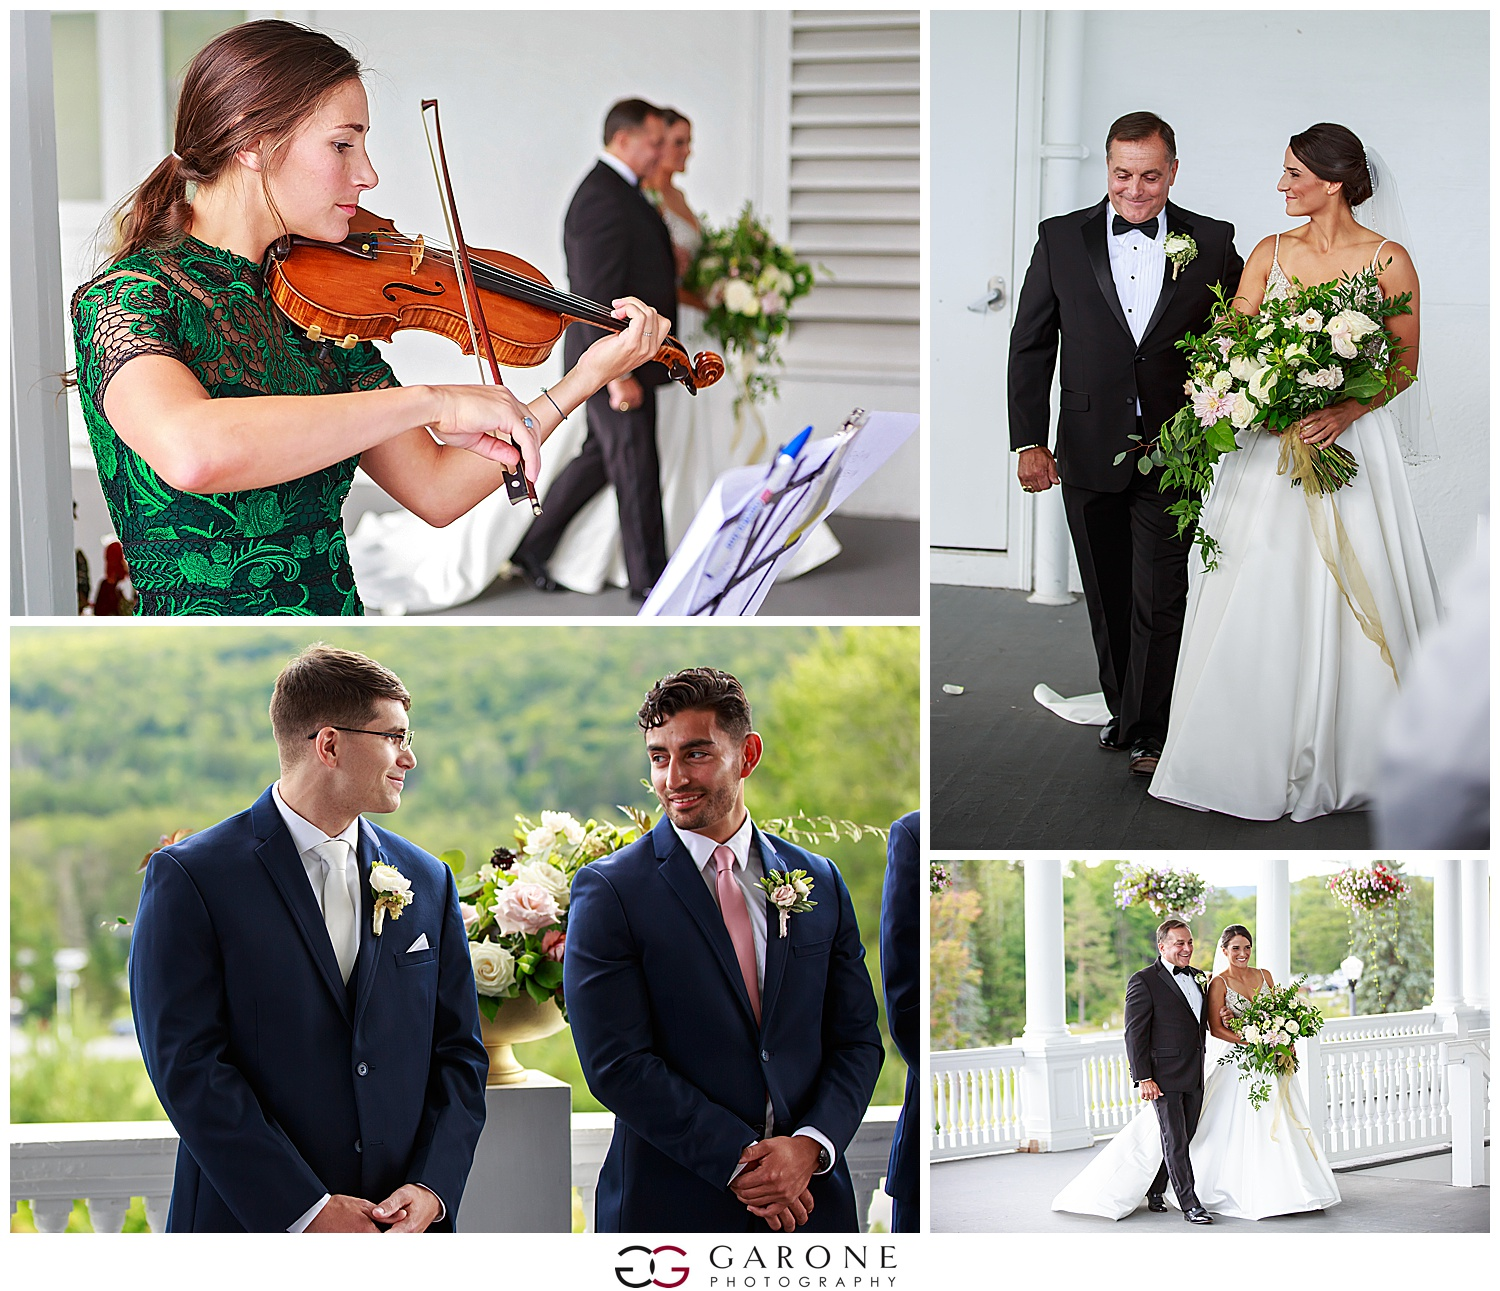 Omni_Mount_Washington_hotel_Wedding_White_Mountain_Wedding_Garone_Photography_0016.jpg